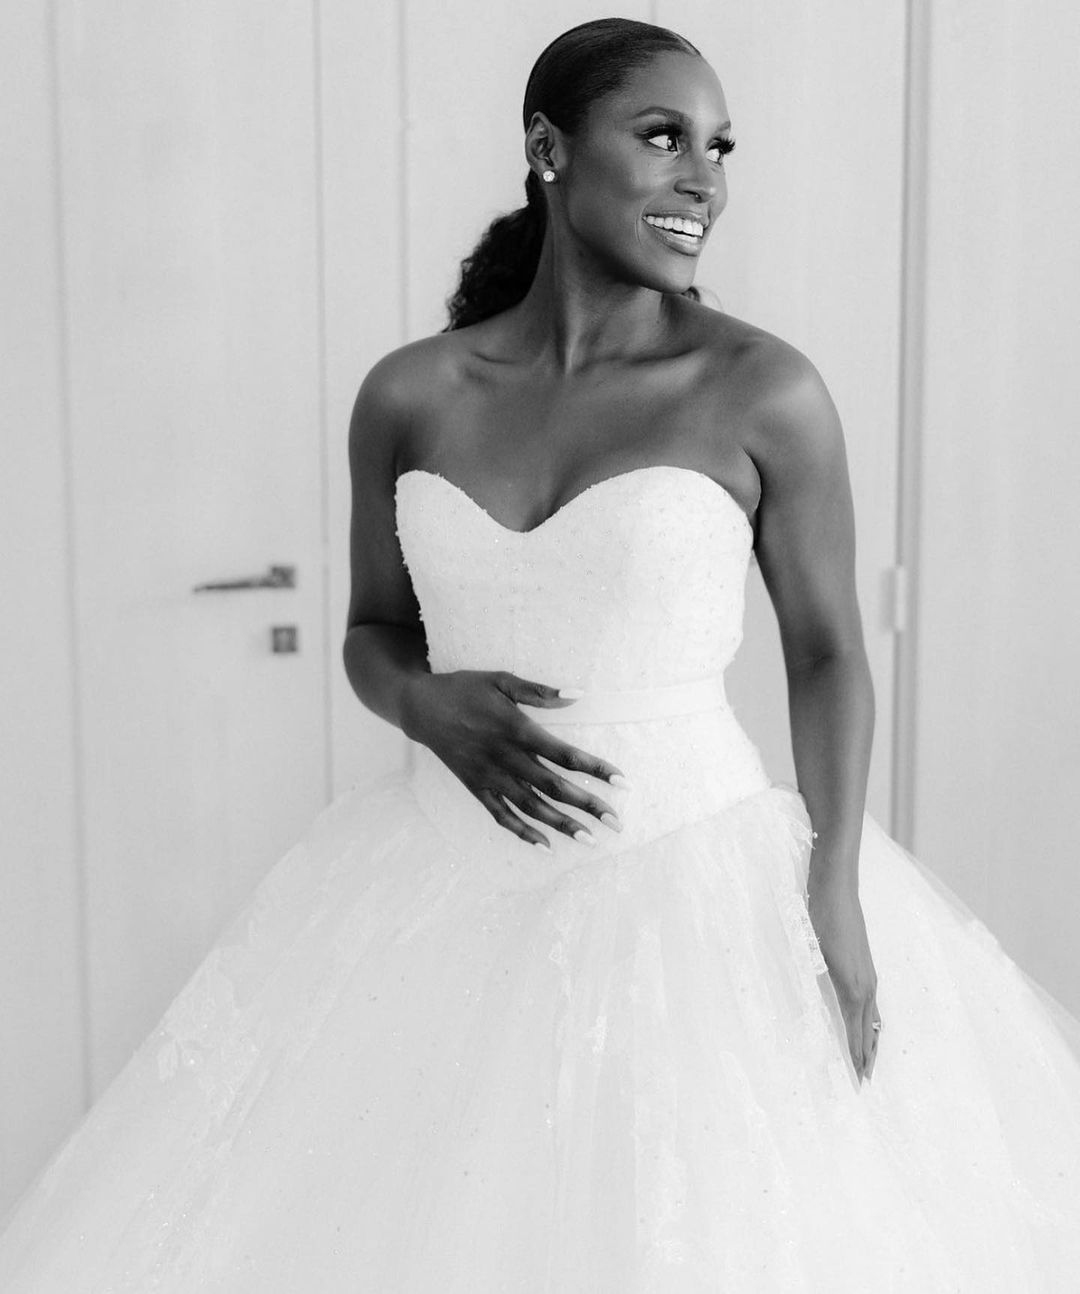 American Actress Issa Rae marries Businessman Louis Diame in intimate ceremony 9